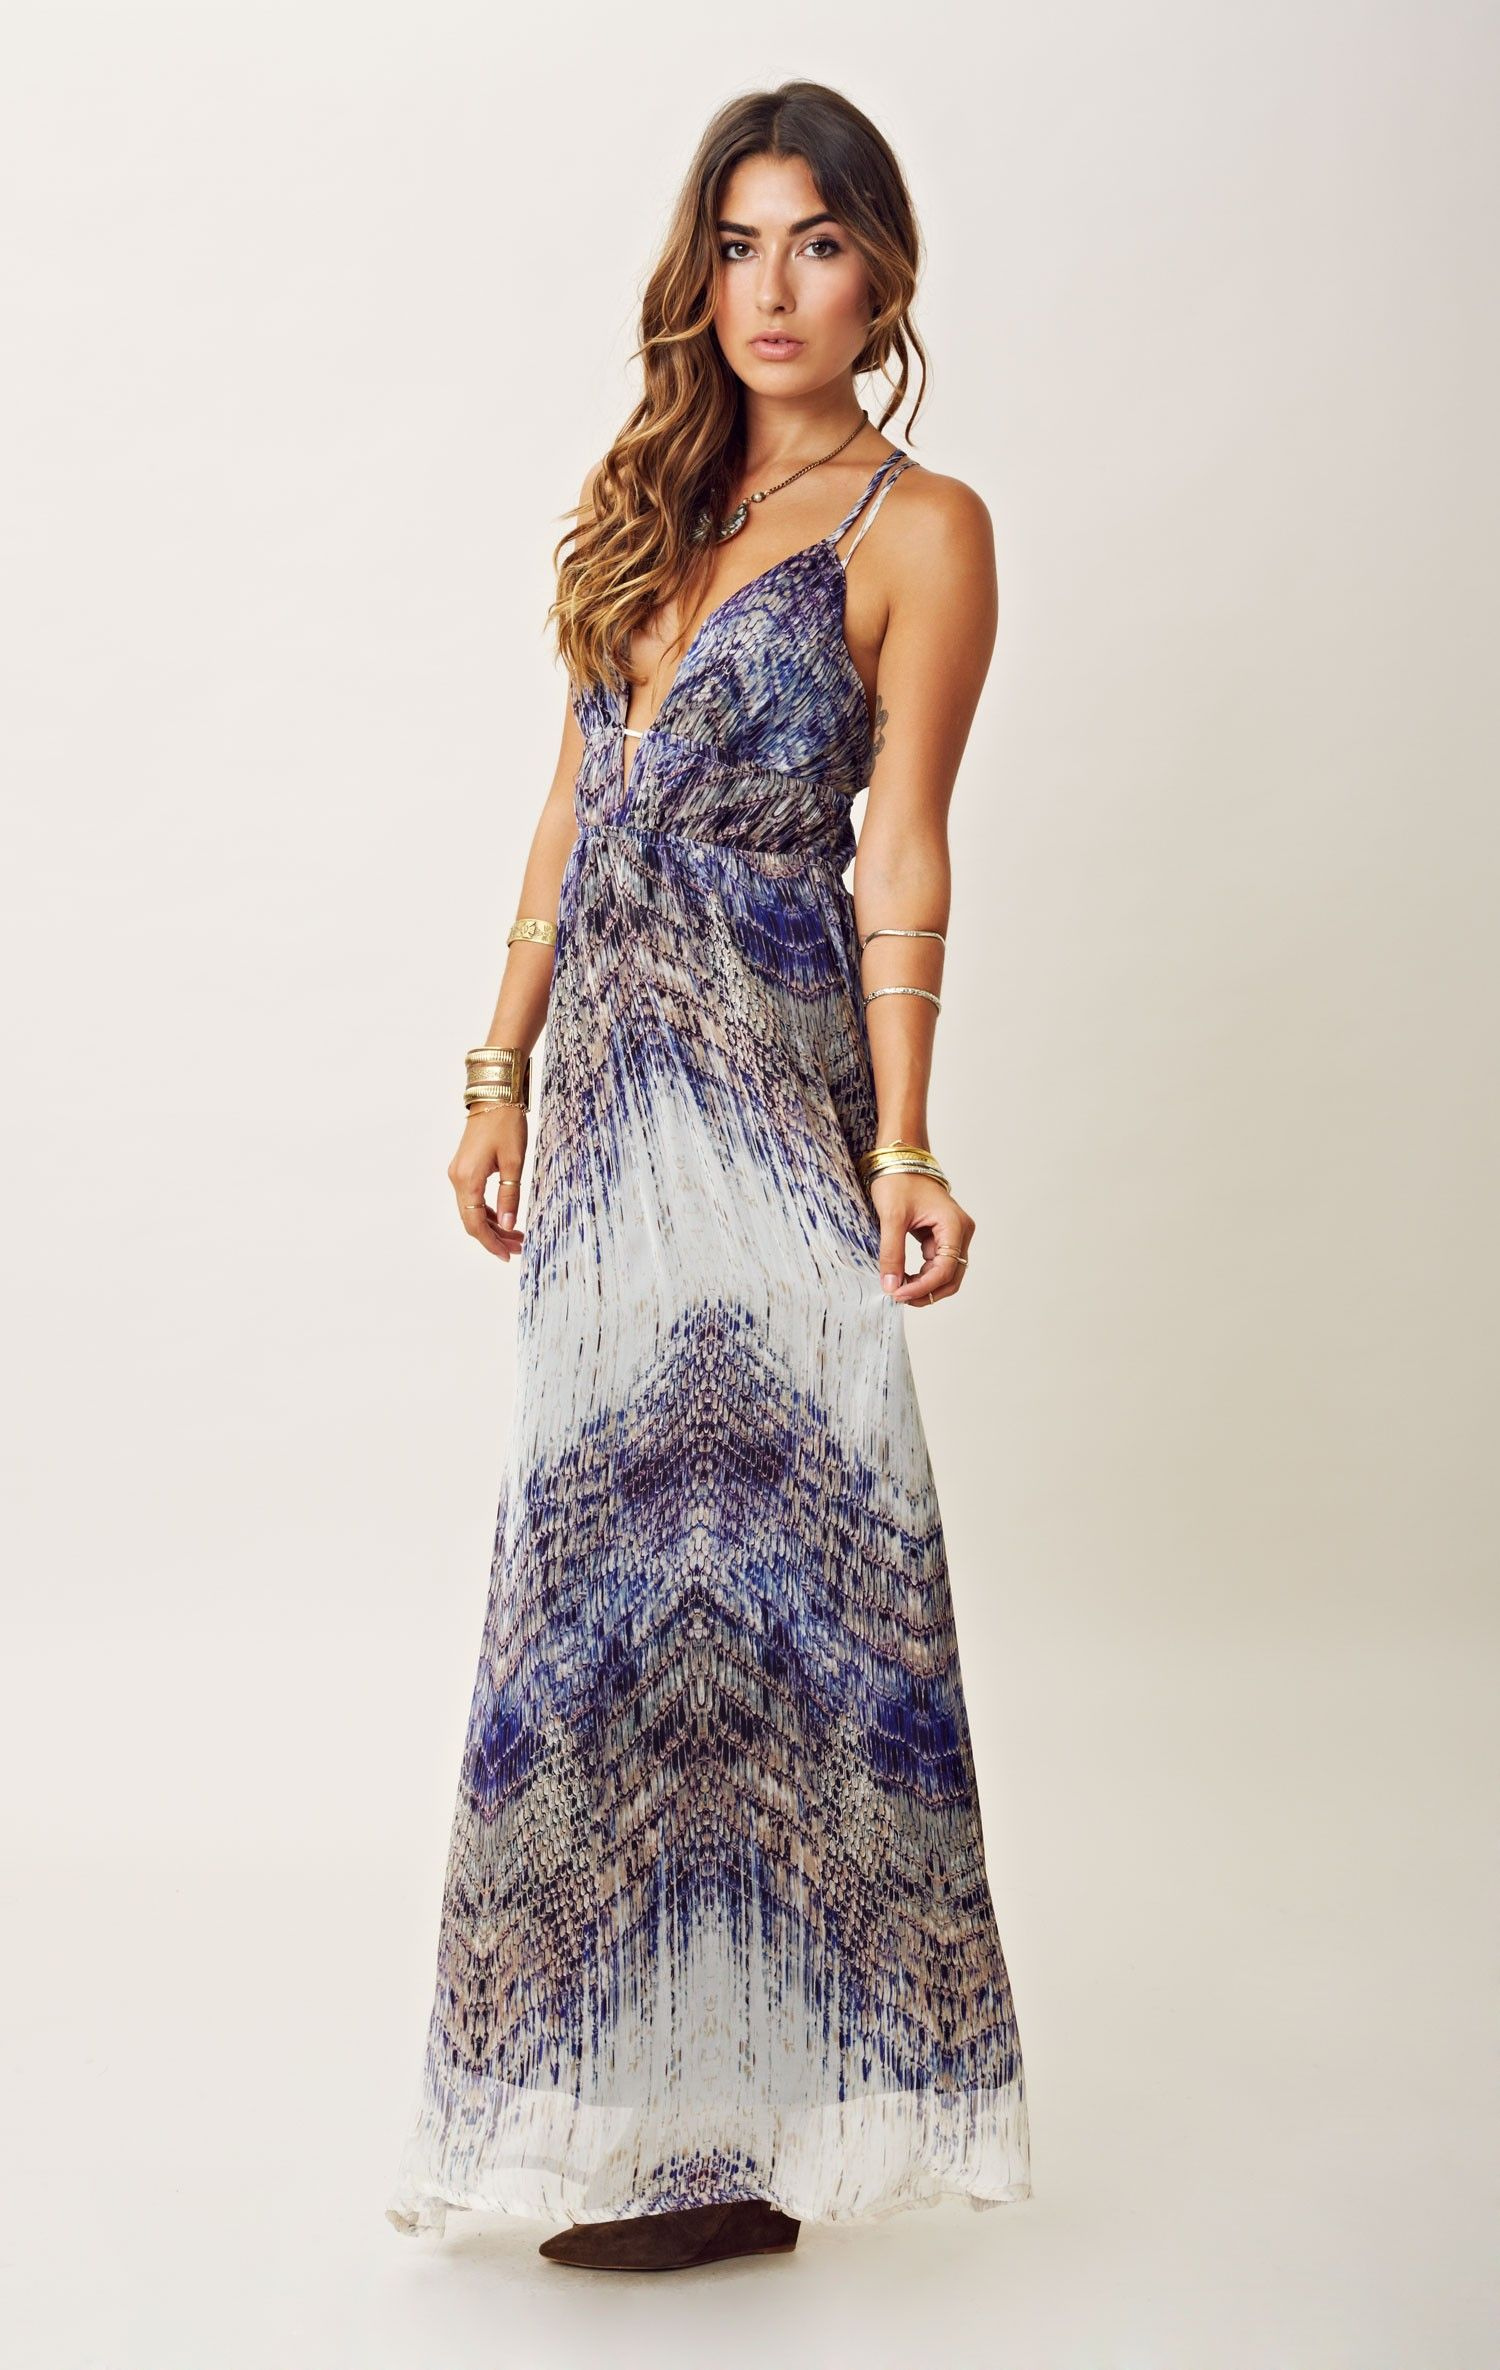 Annaunaki silk printed maxi dress fashionlove